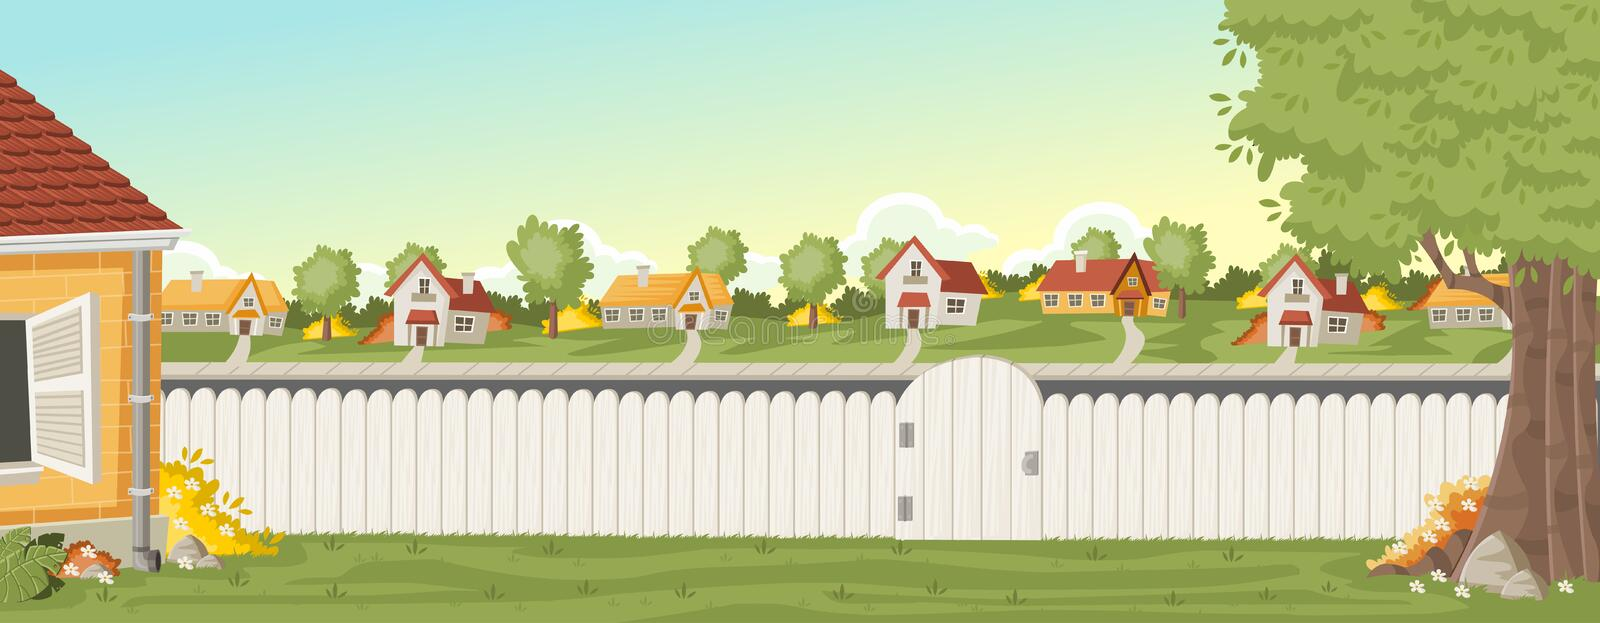 Wood fence on the backyard of a colorful house in suburb neighborhood. Green garden with grass, trees, flowers and clouds stock illustration